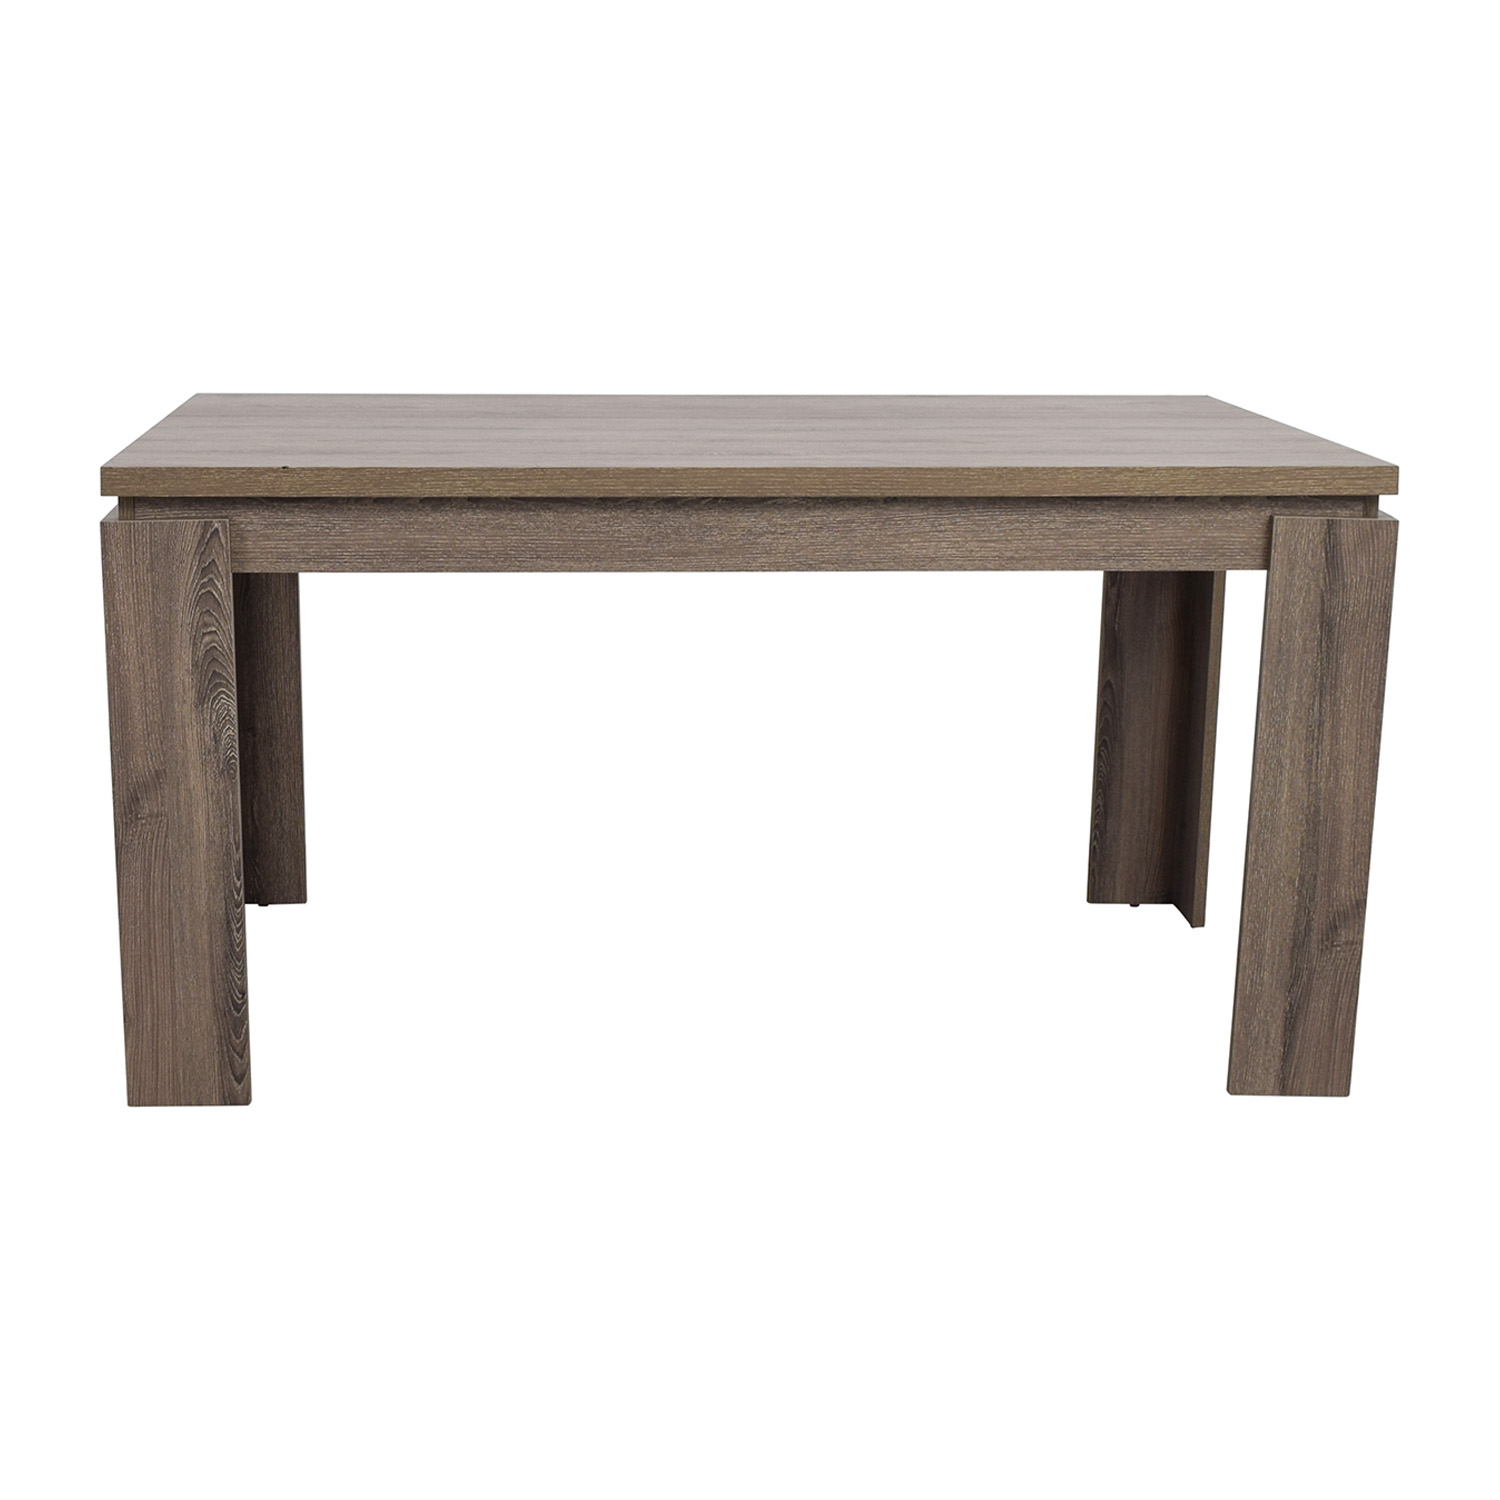 WilliamBrugman WilliamBrugman Rustic Grey Table nj